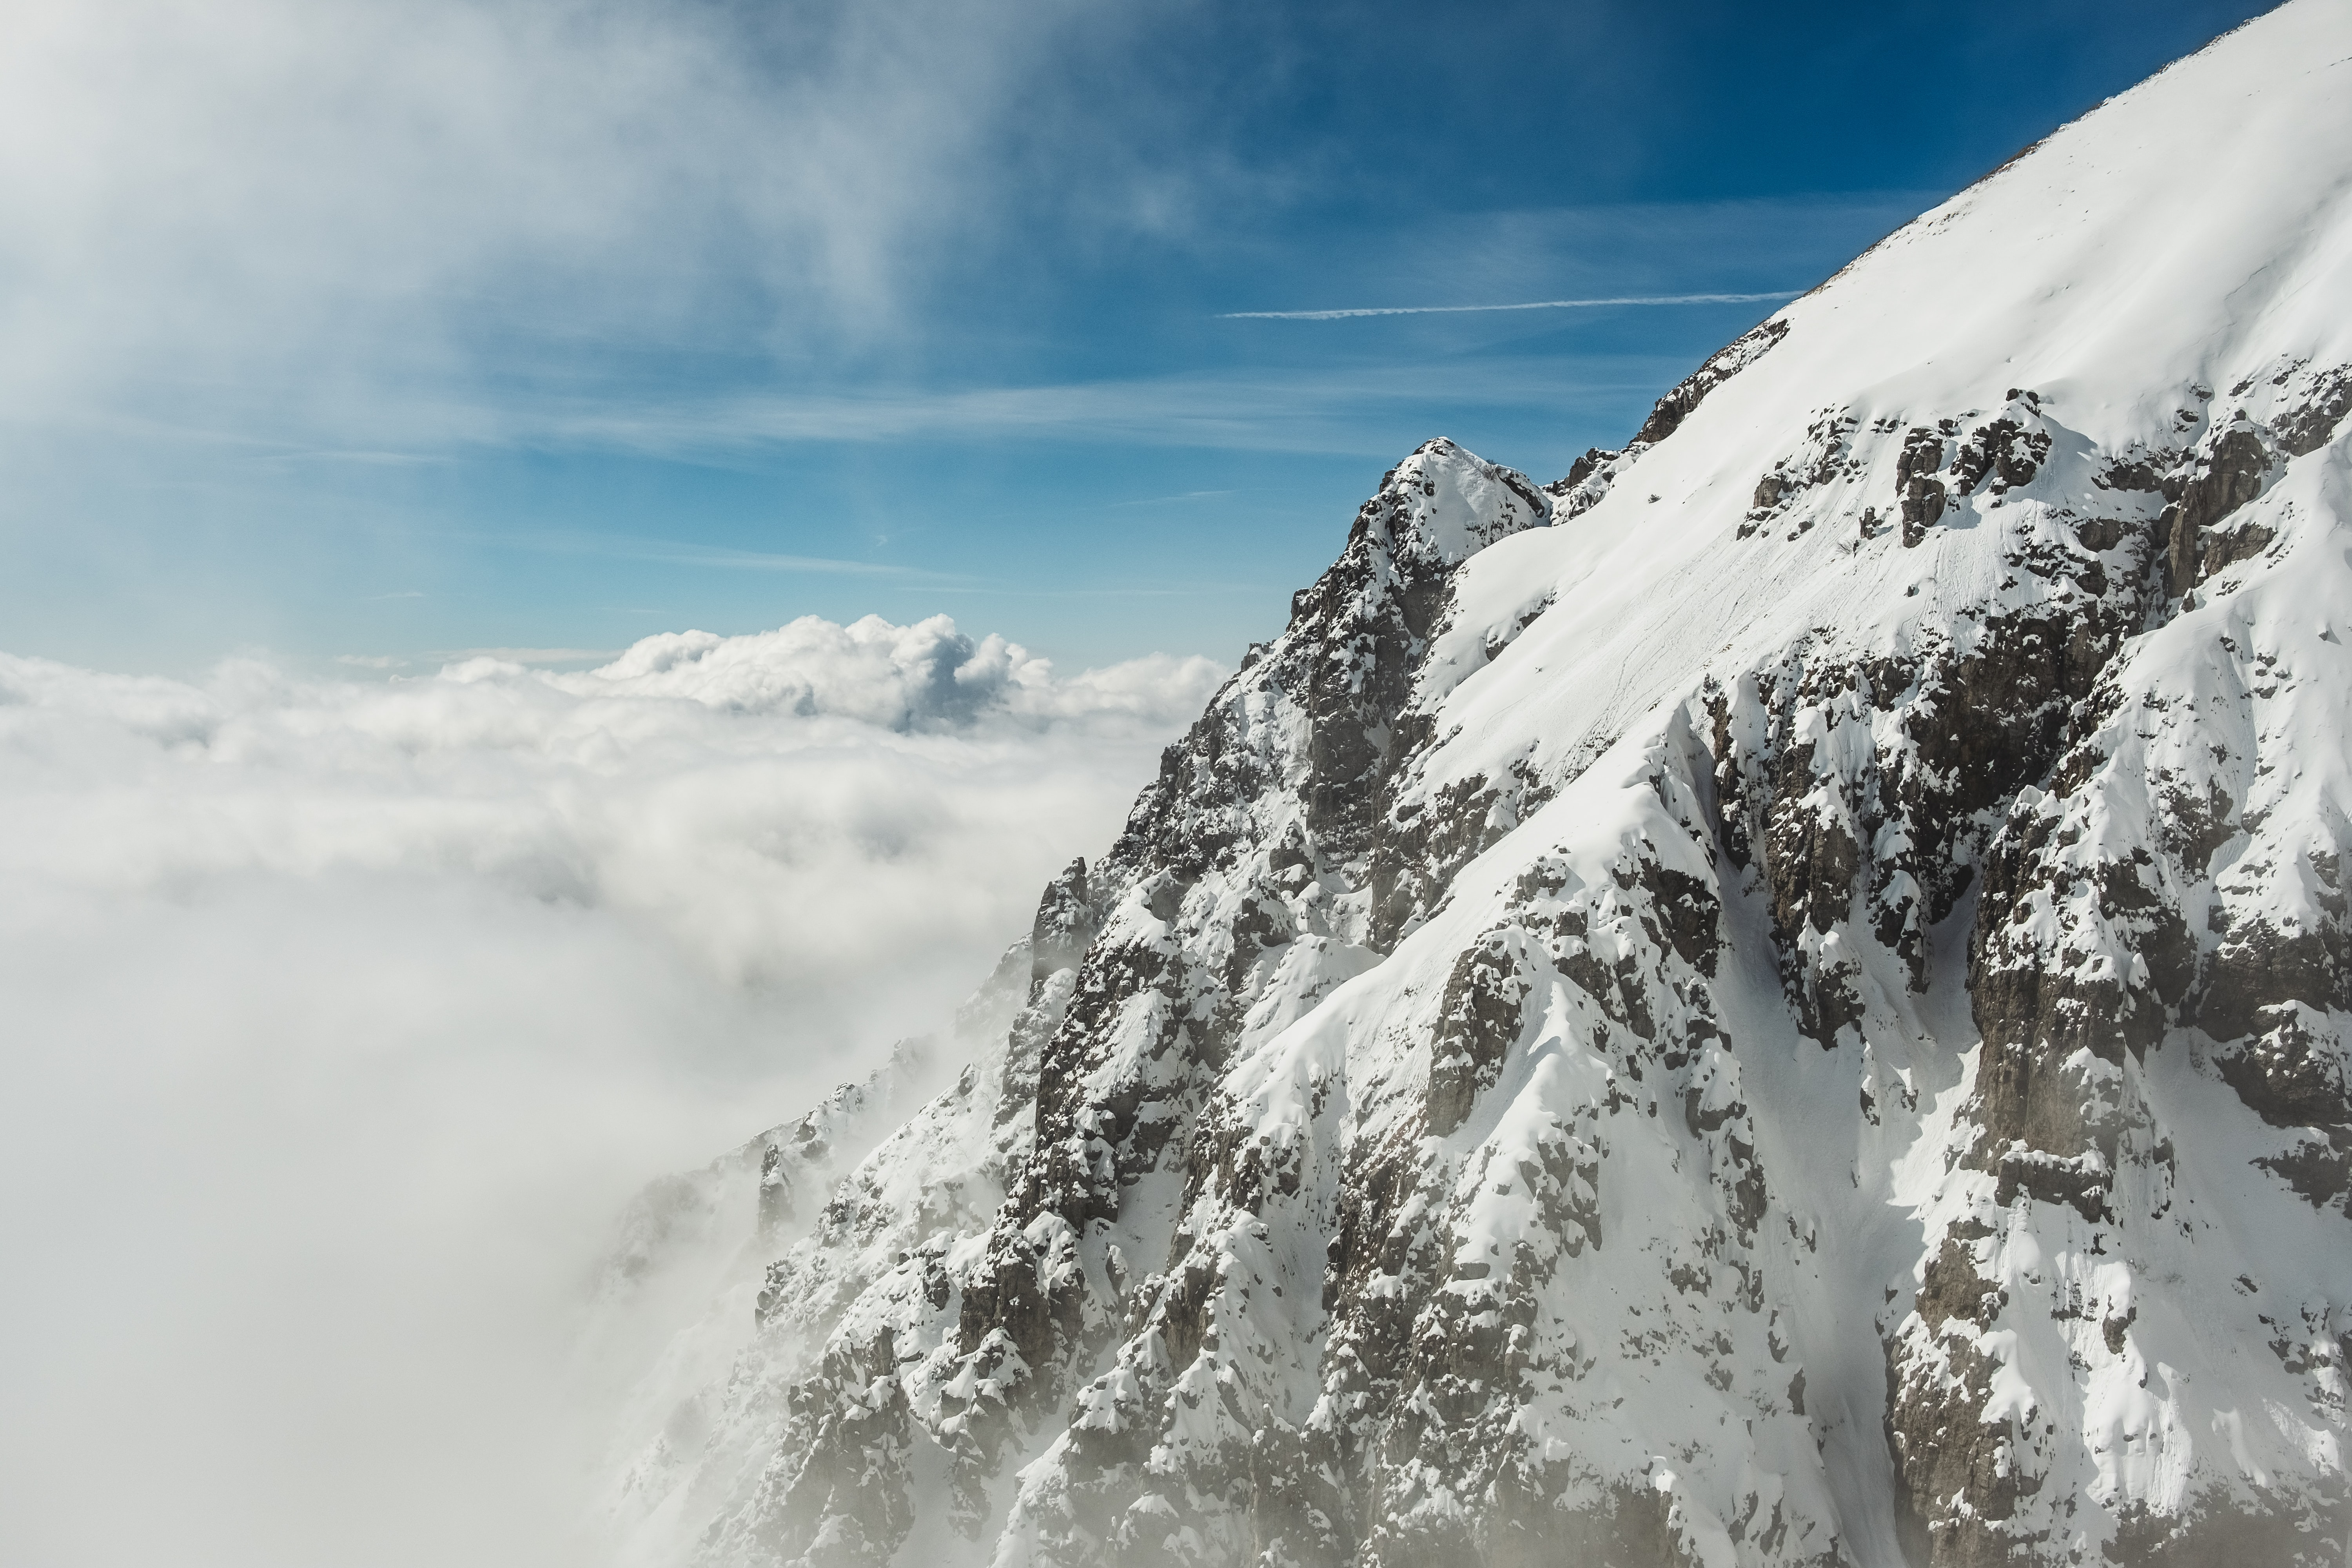 photo of snow covered mountain during daytime